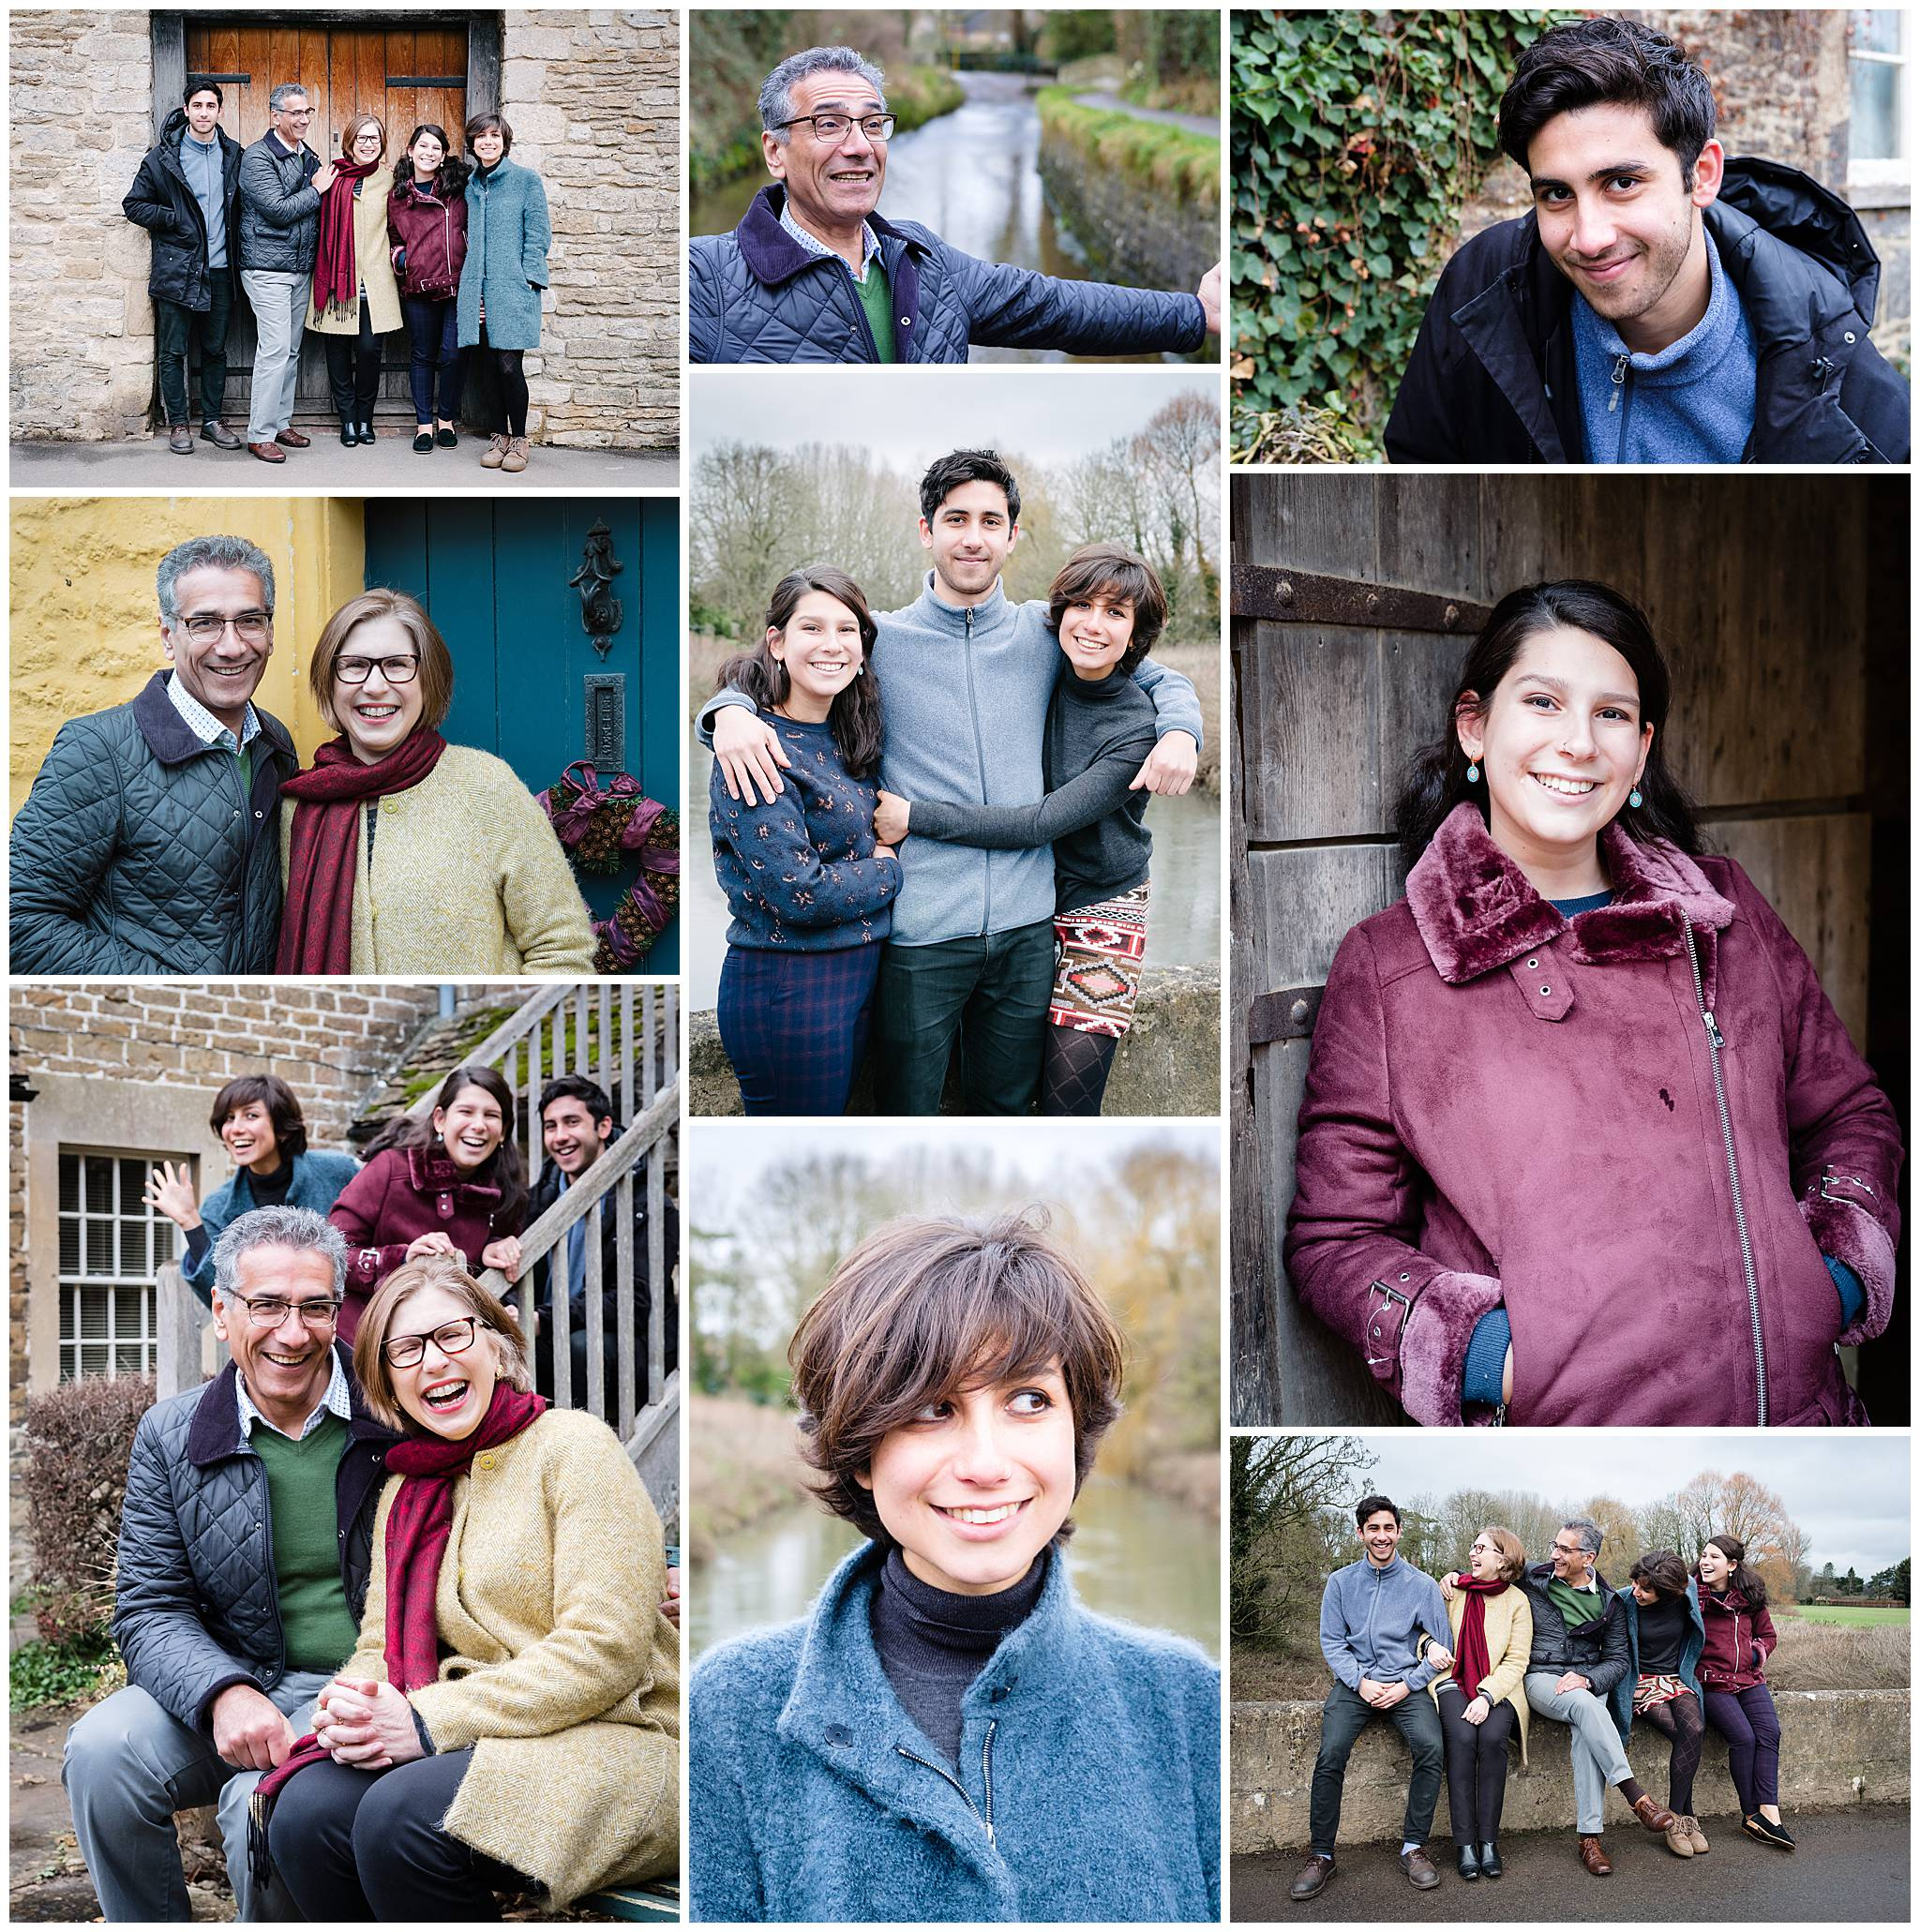 Collage of a Christmas family photo session in the National Trust village of Lacock